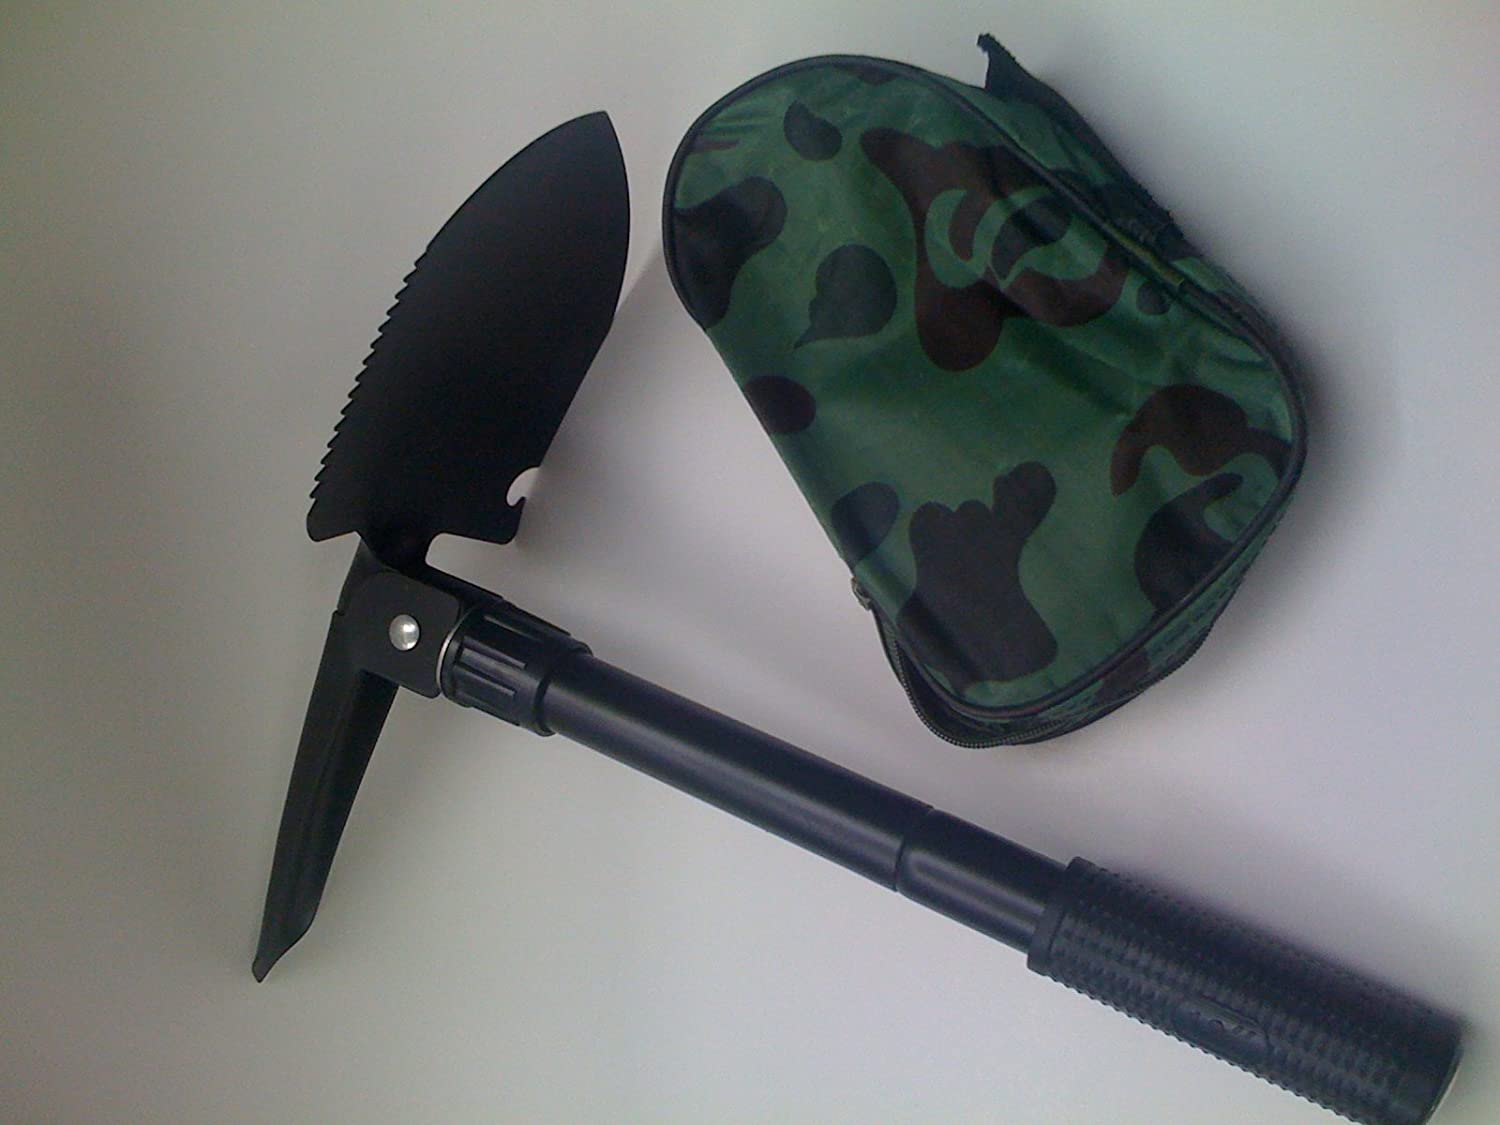 New 2x Folding Shovels Three Positions for Shoveling and Diging with Compass Survival Tool Emergency Garden